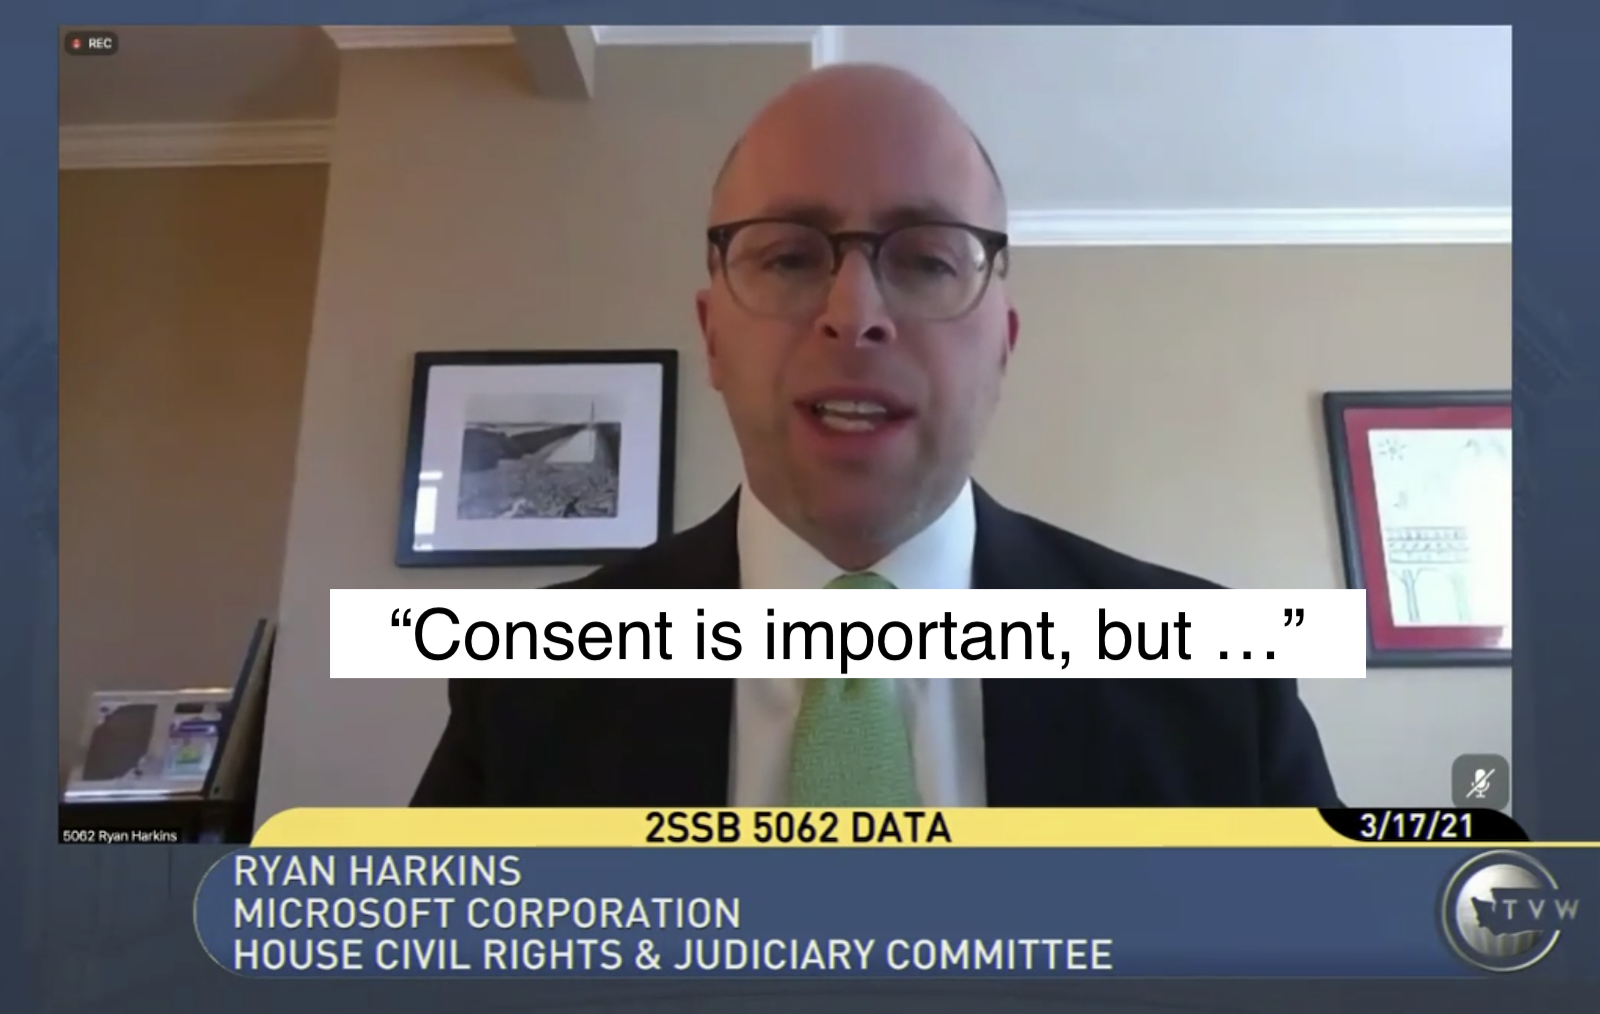 """A male in a tie and jacket saying """"Consent is important, but ...""""   The chyron at the bottom identifies him as Ryan Harkins, Microsoft Corporation, testifying to the House Civil Rights & Judiciary Committee"""